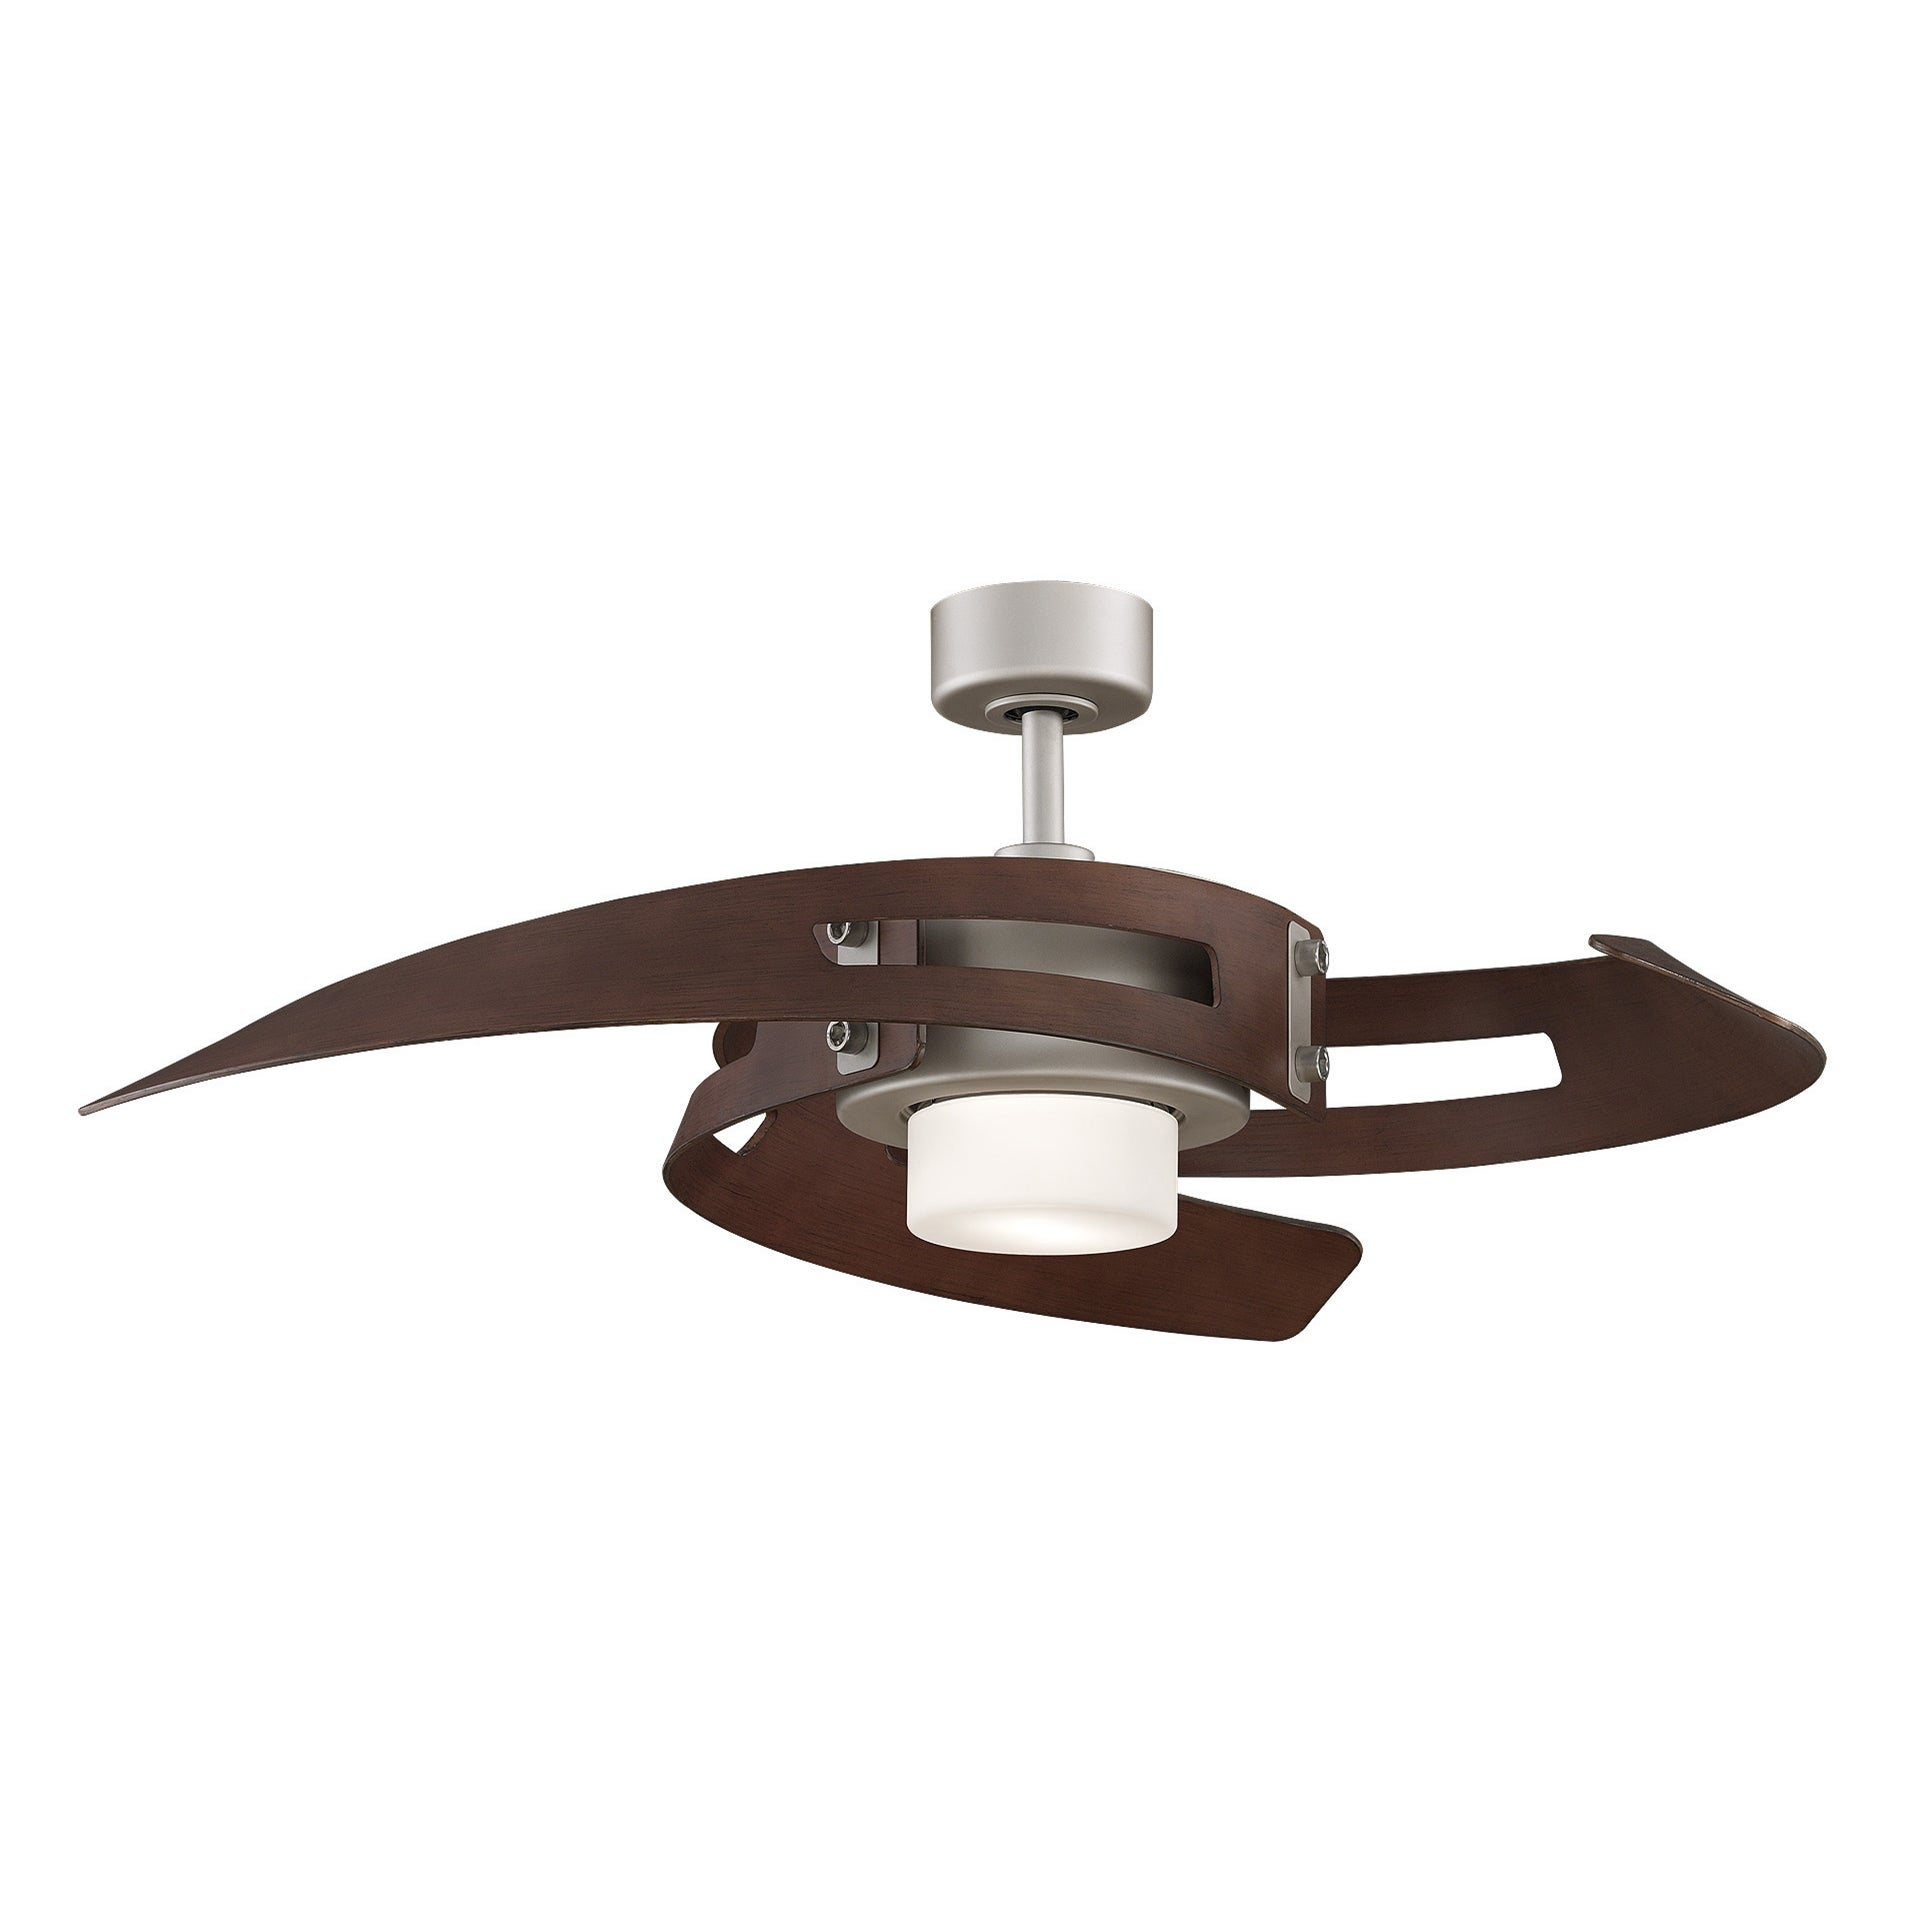 Fanimation Satin Nickel 2-light Ceiling Fan at Sears.com